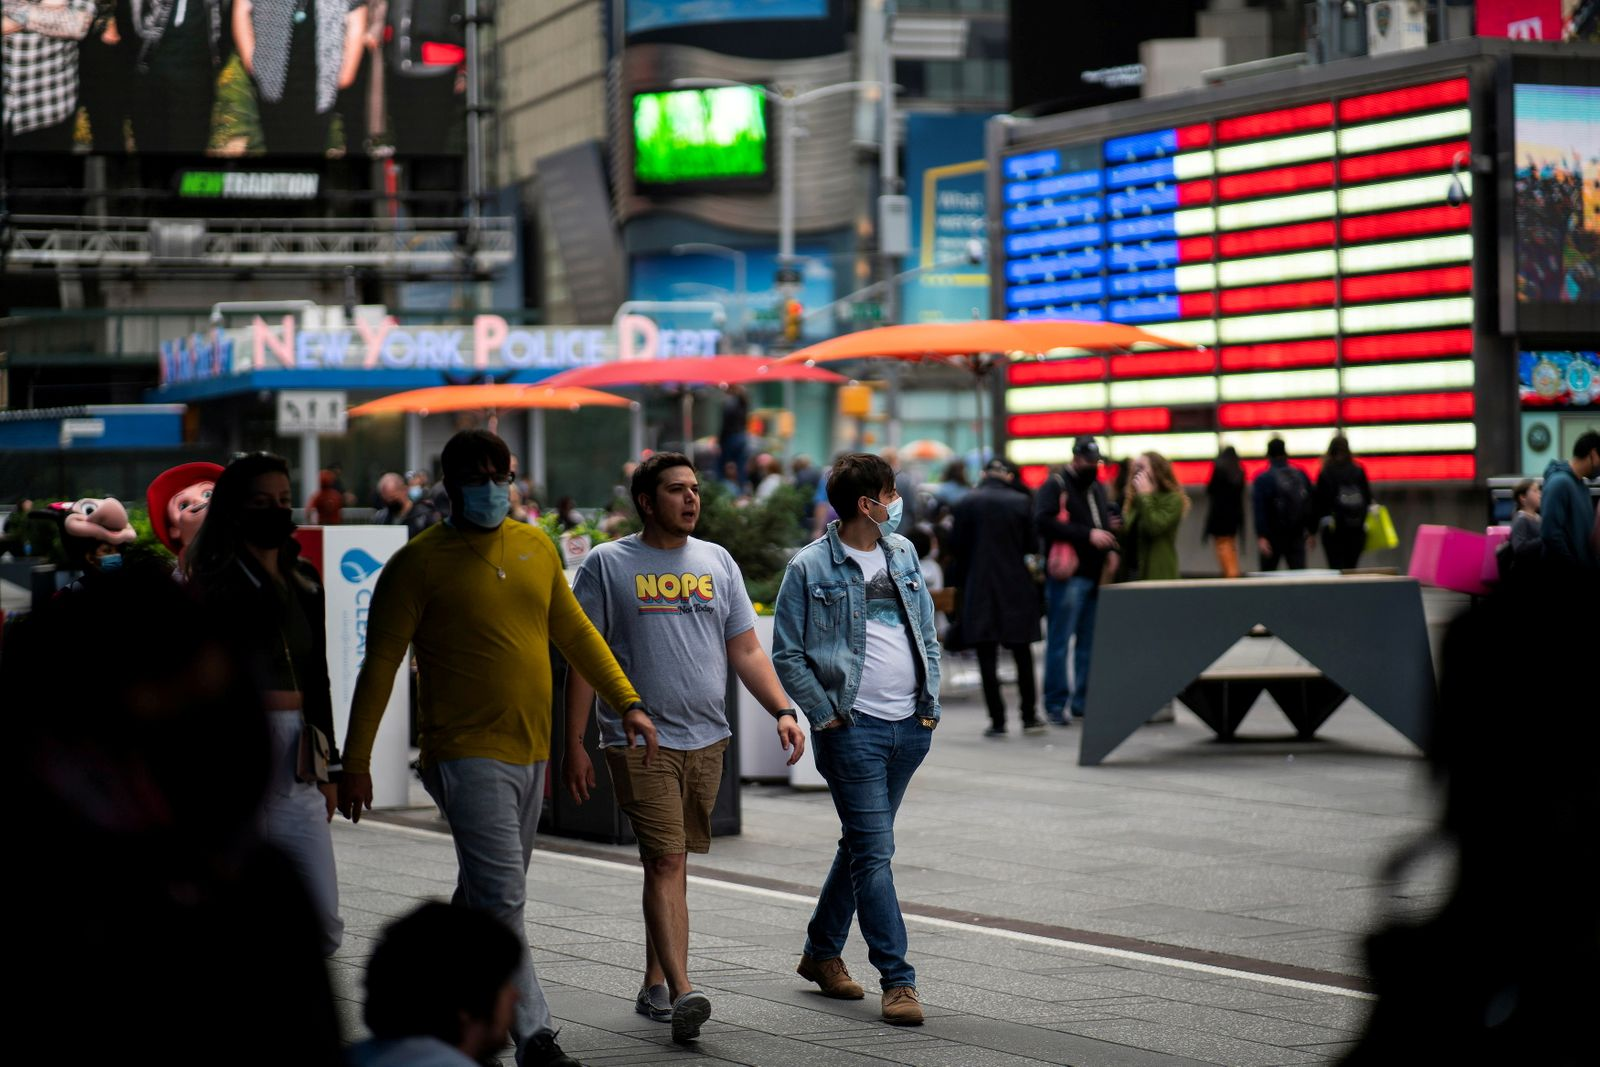 FILE PHOTO: People make their way through Times Square, amid the coronavirus disease (COVID-19) pandemic, in Manhattan, New York City